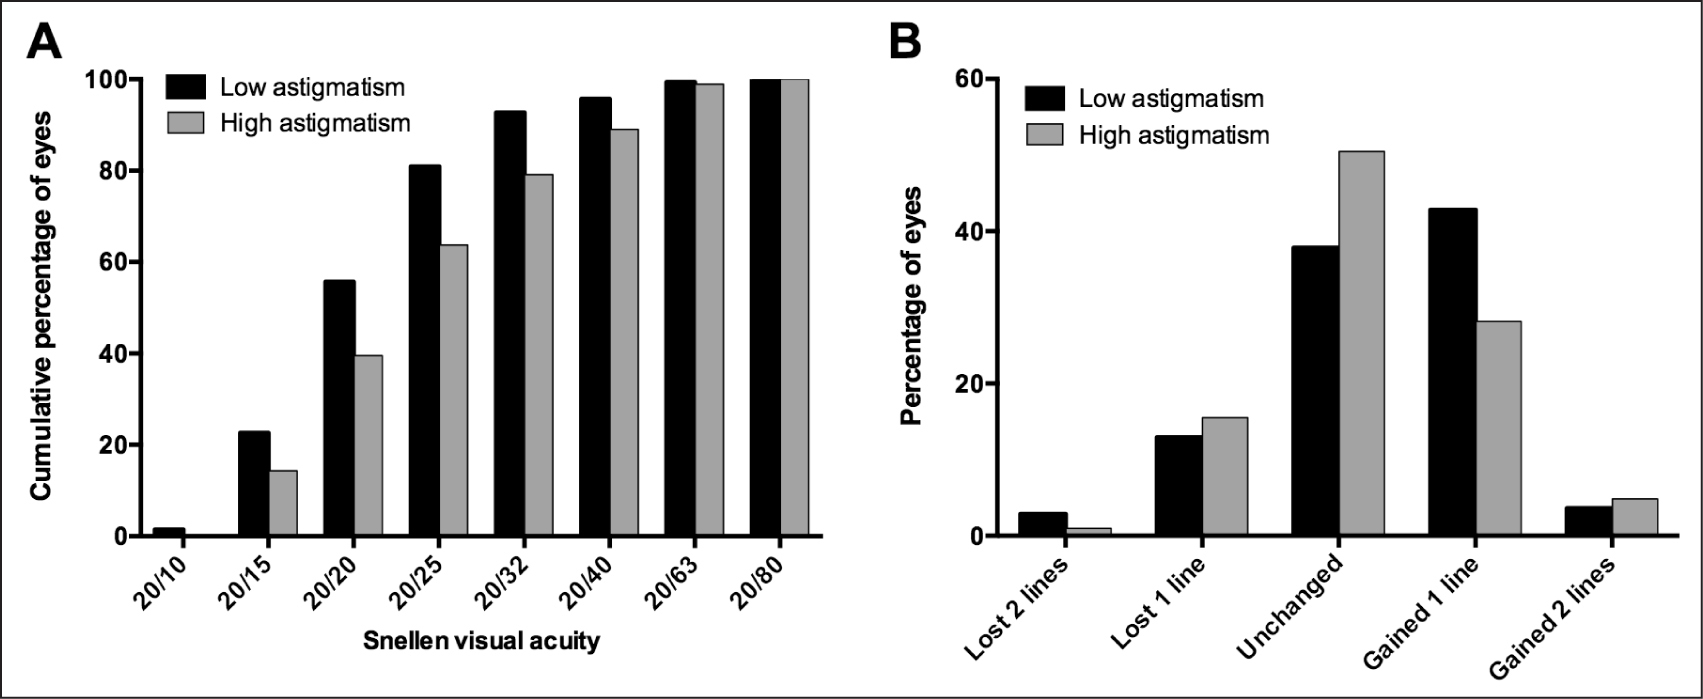 (A) Cumulative percentage of eyes obtaining the specified uncorrected distance visual acuity in Snellen lines. The figure includes only eyes treated for plano refraction. (B) Percentage of eyes with the specified loss or gain in corrected distance visual acuity 3 months after surgery.